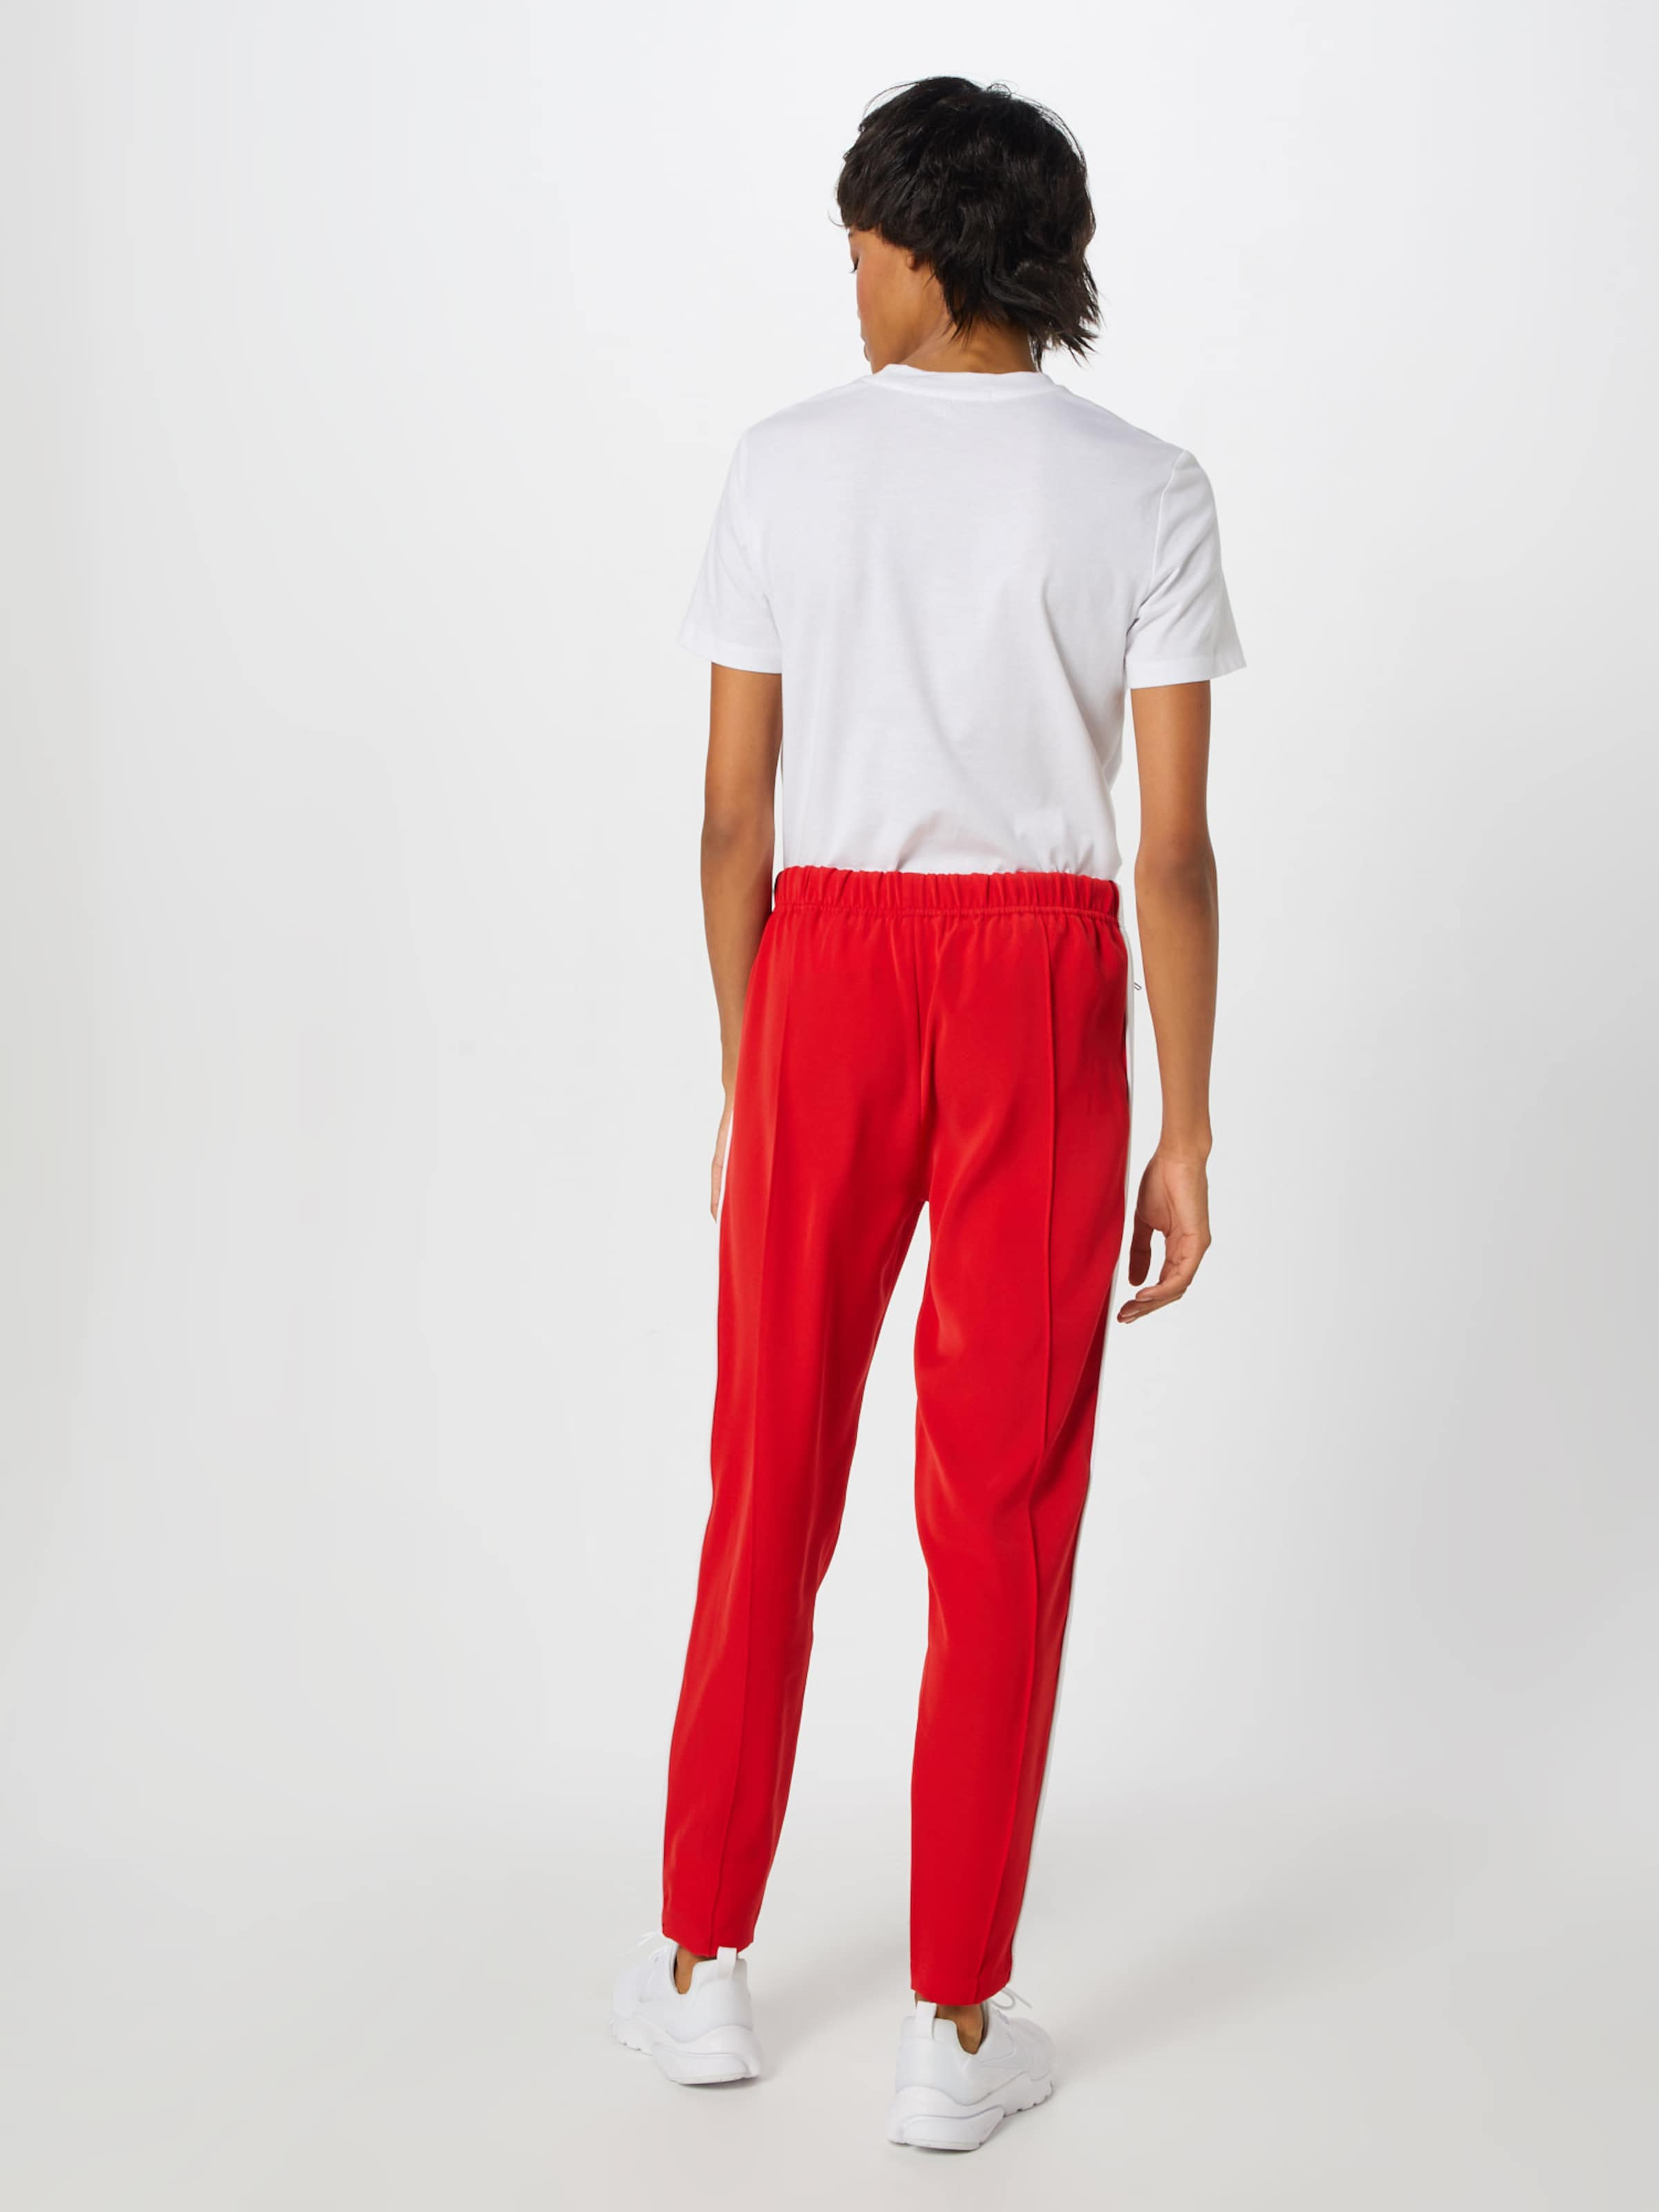 Hose Rot Jeans Calvin Pant' 'drapey Klein Track In iOXkwZuPT